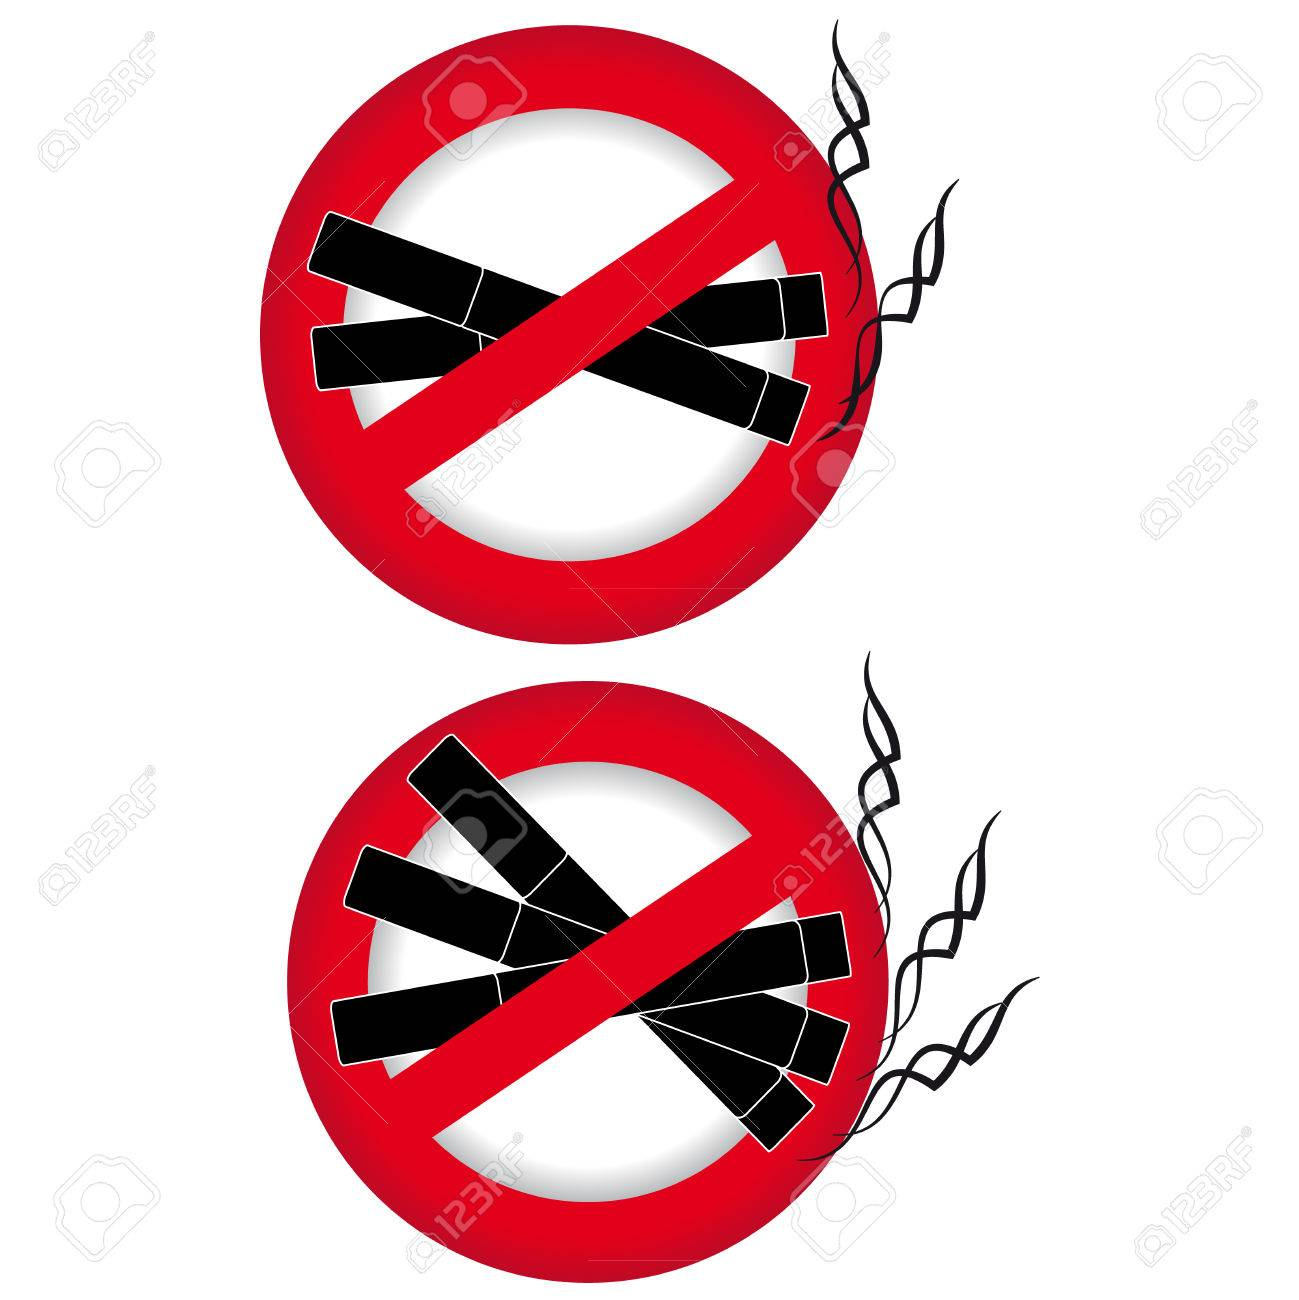 No Smoking Symbol On White Background Vector Illustration Royalty